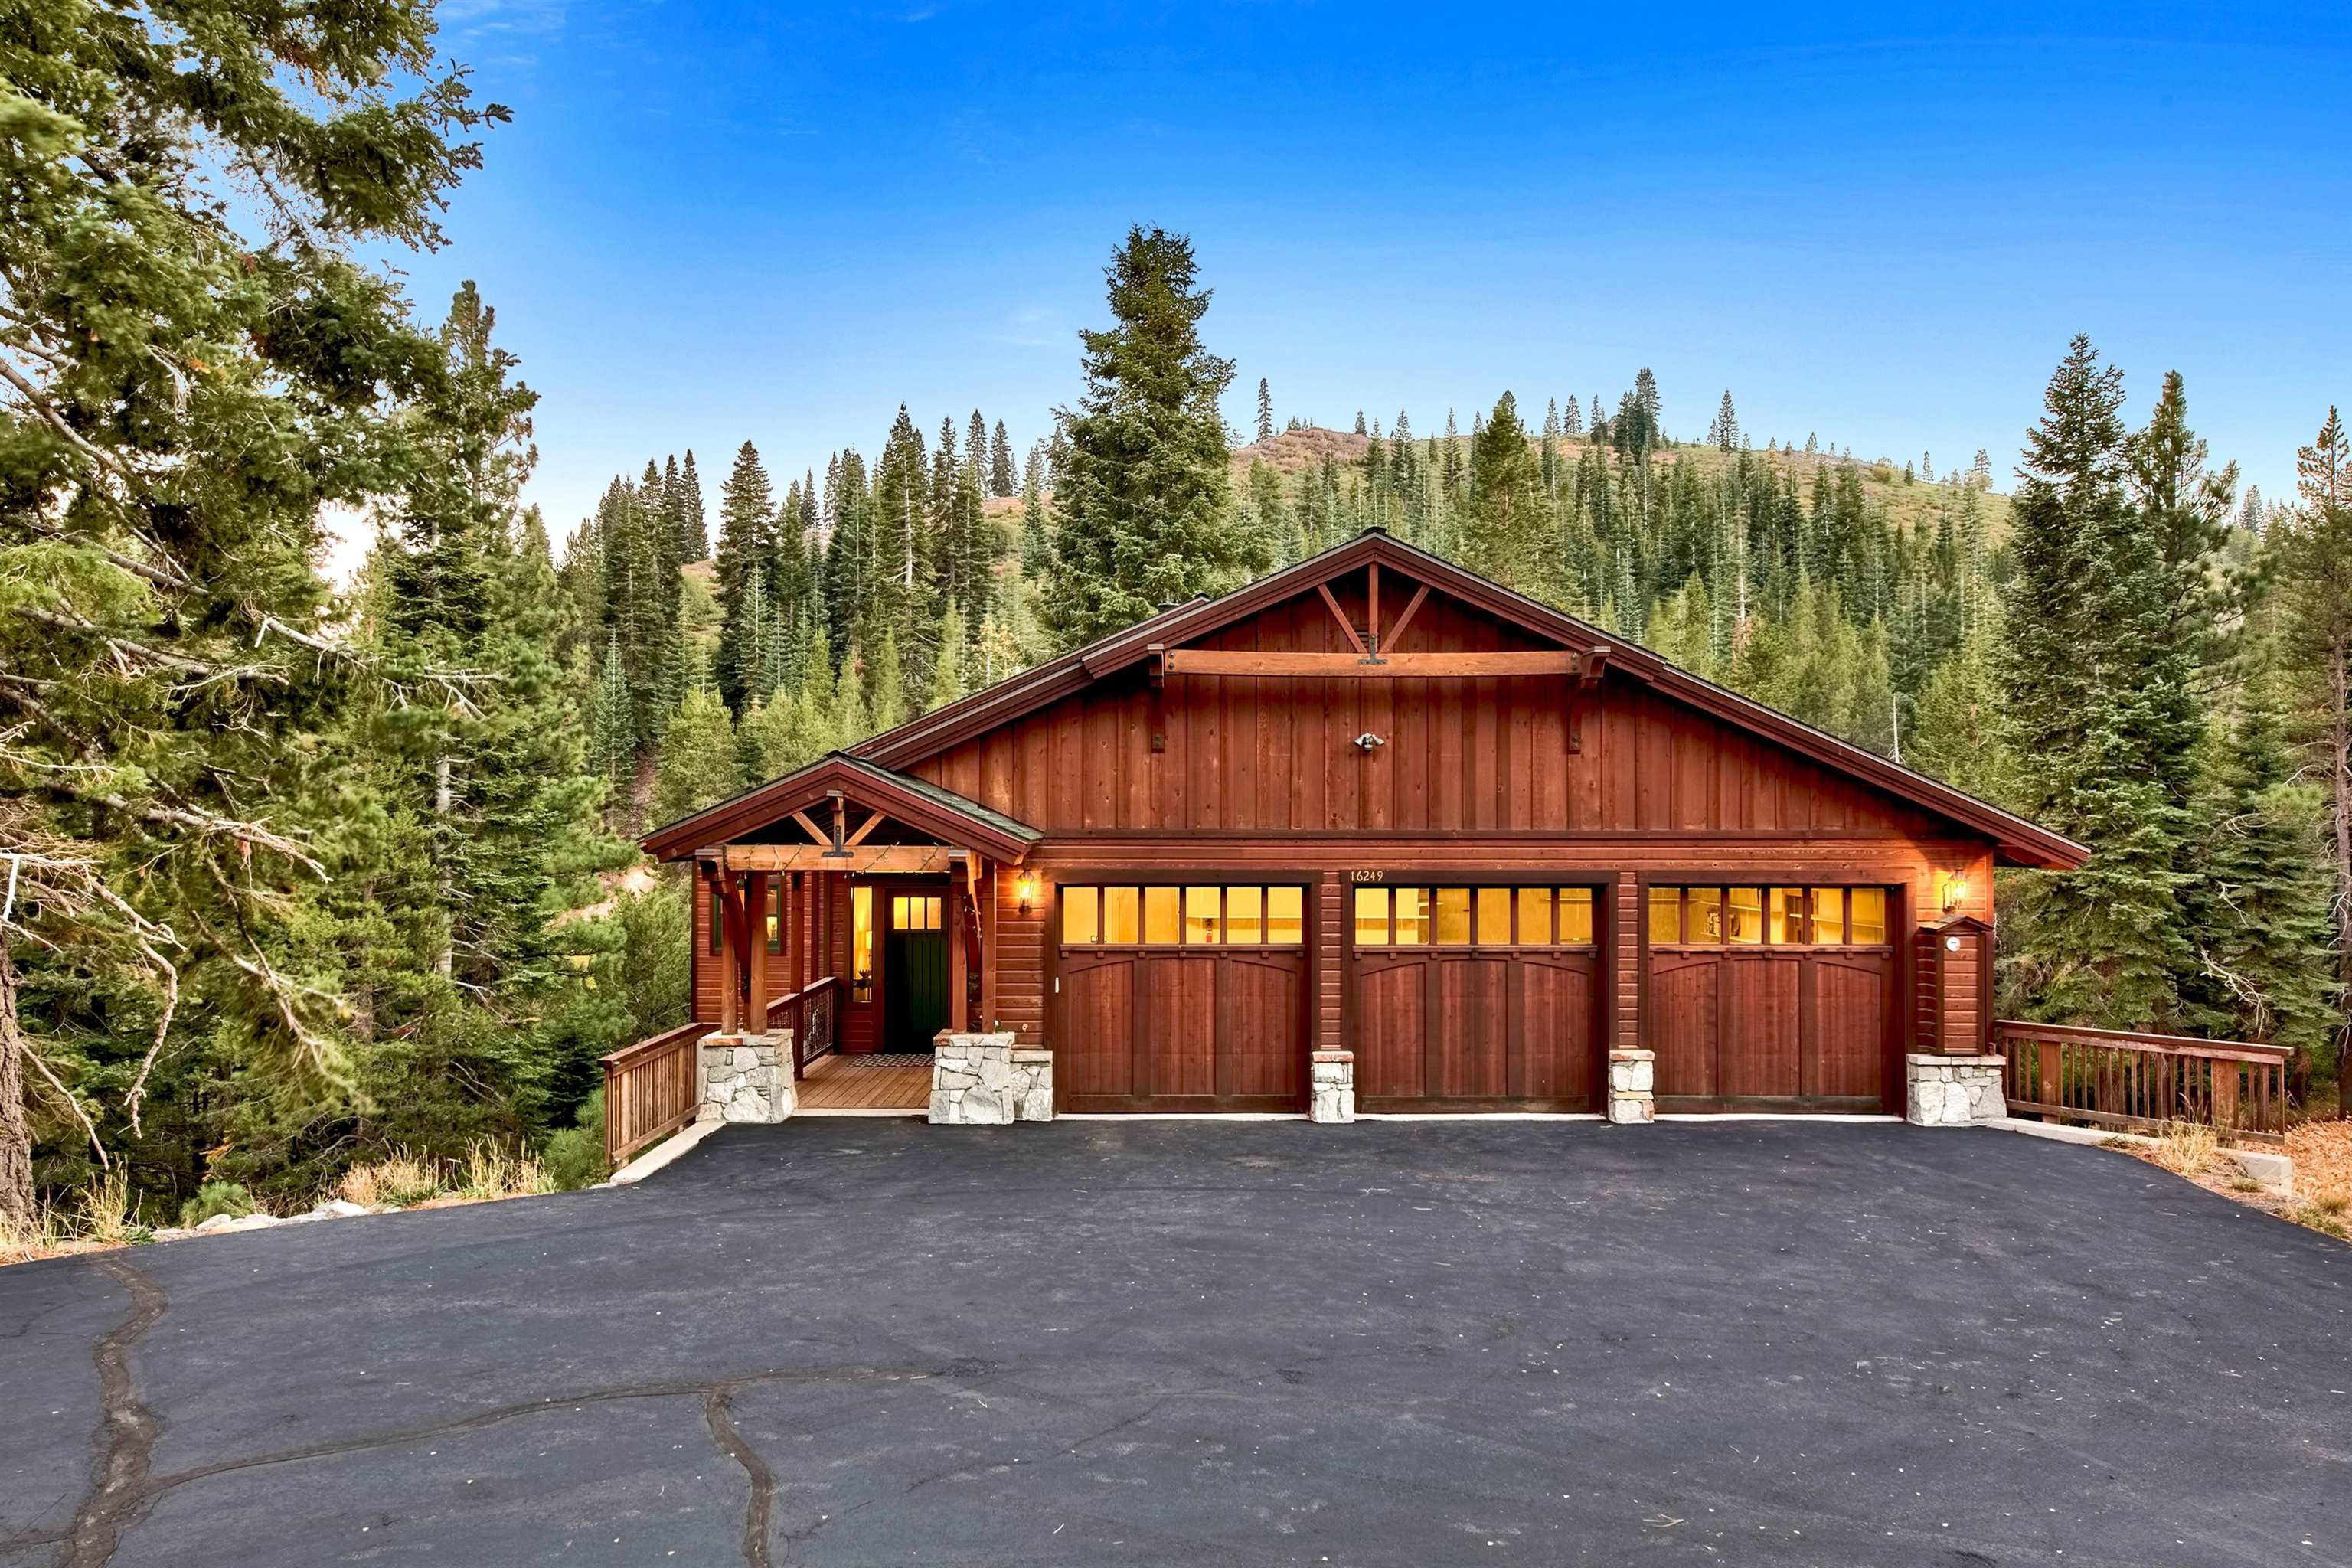 Image for 16249 Skislope Way, Truckee, CA 96161